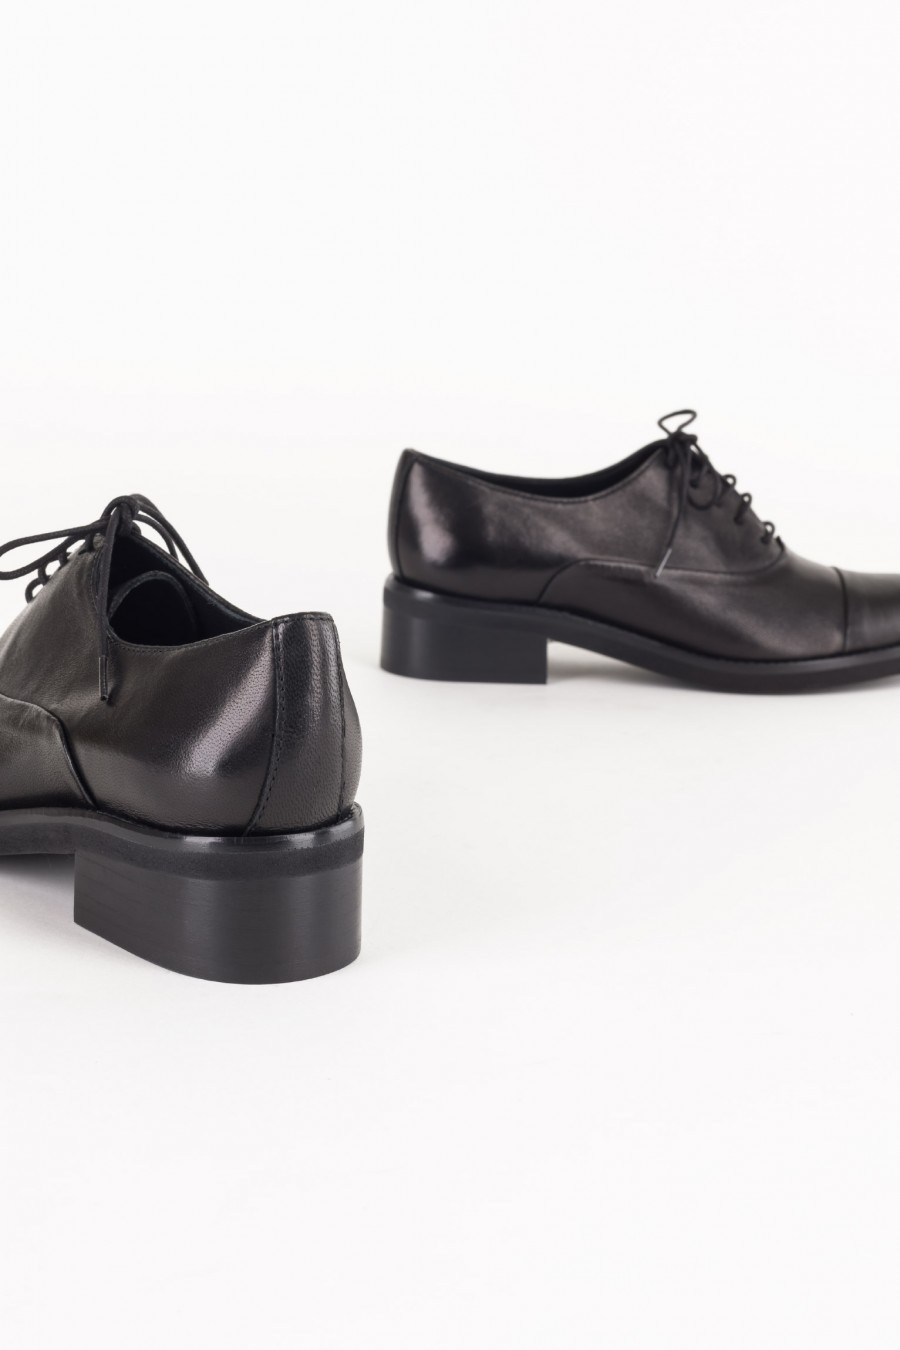 Laced black derby shoes